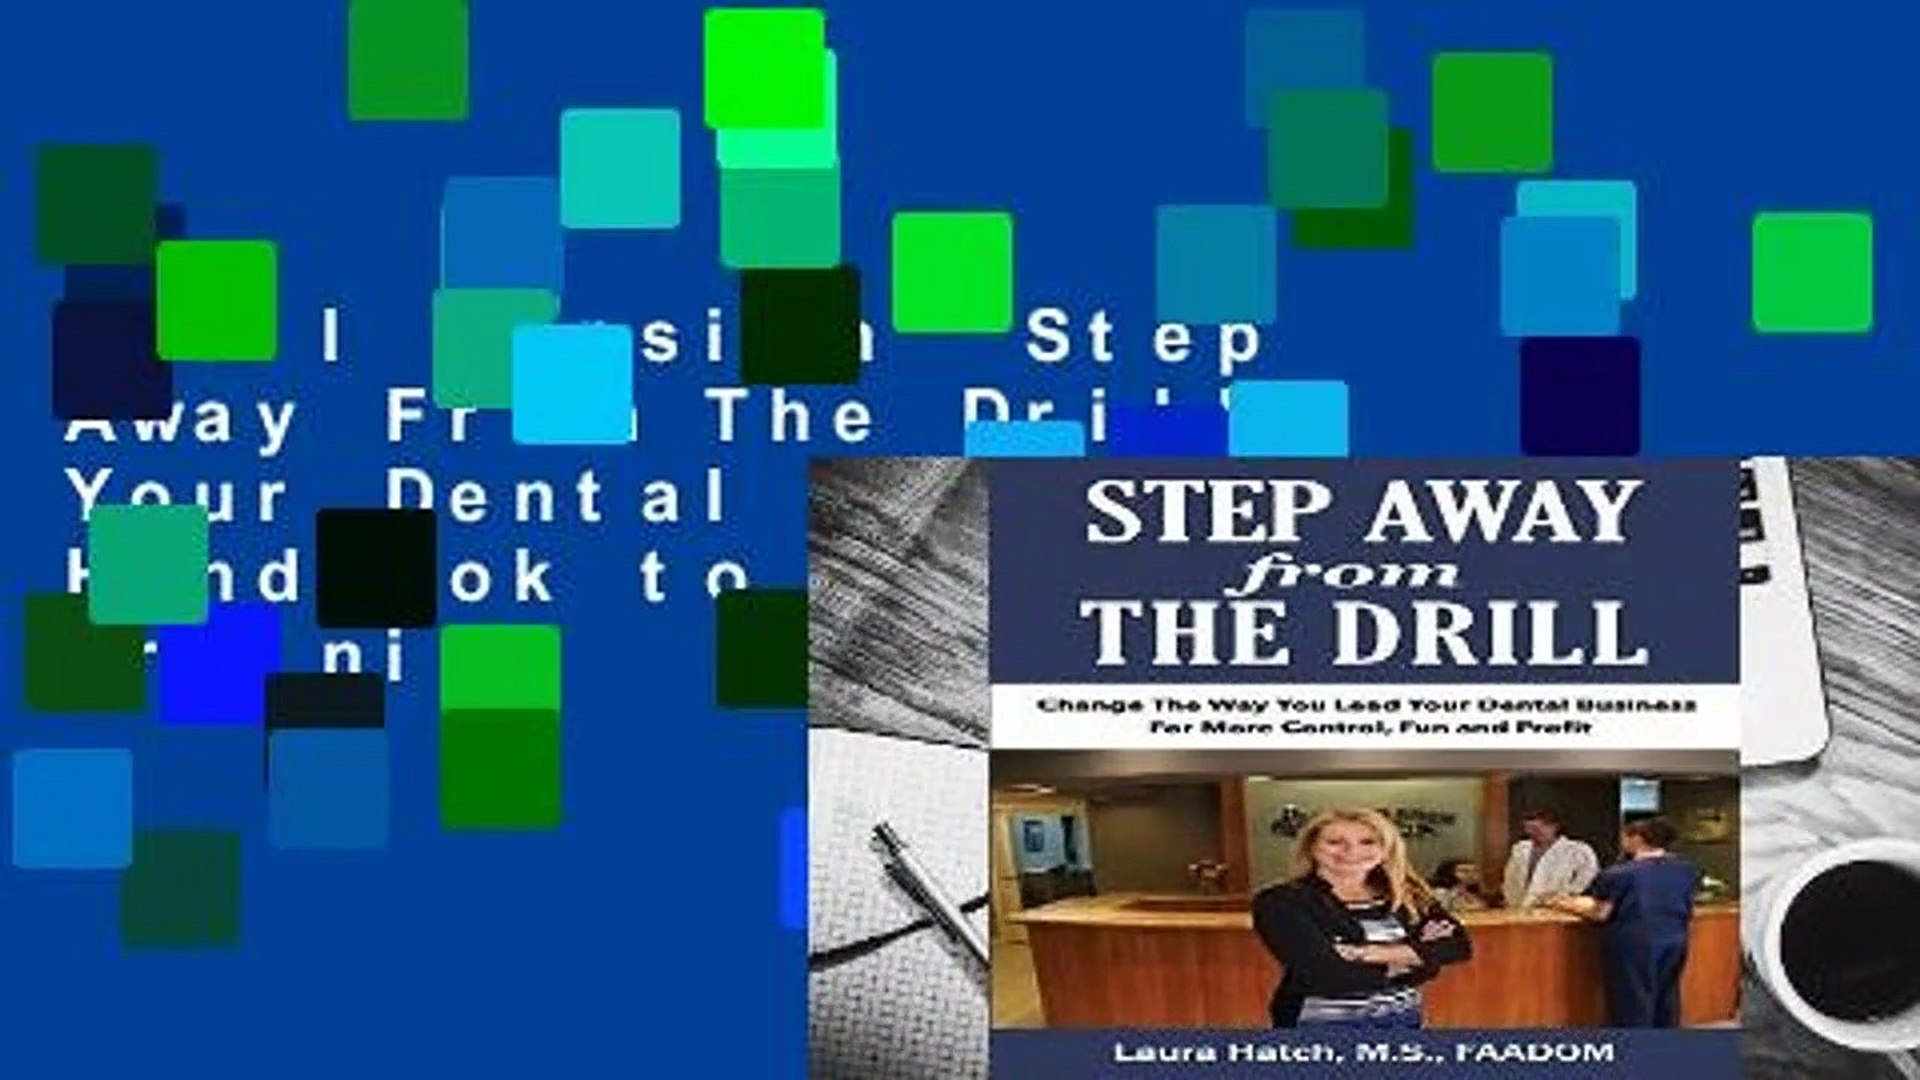 Full version  Step Away From The Drill: Your Dental Front Office Handbook to Accelerate Training